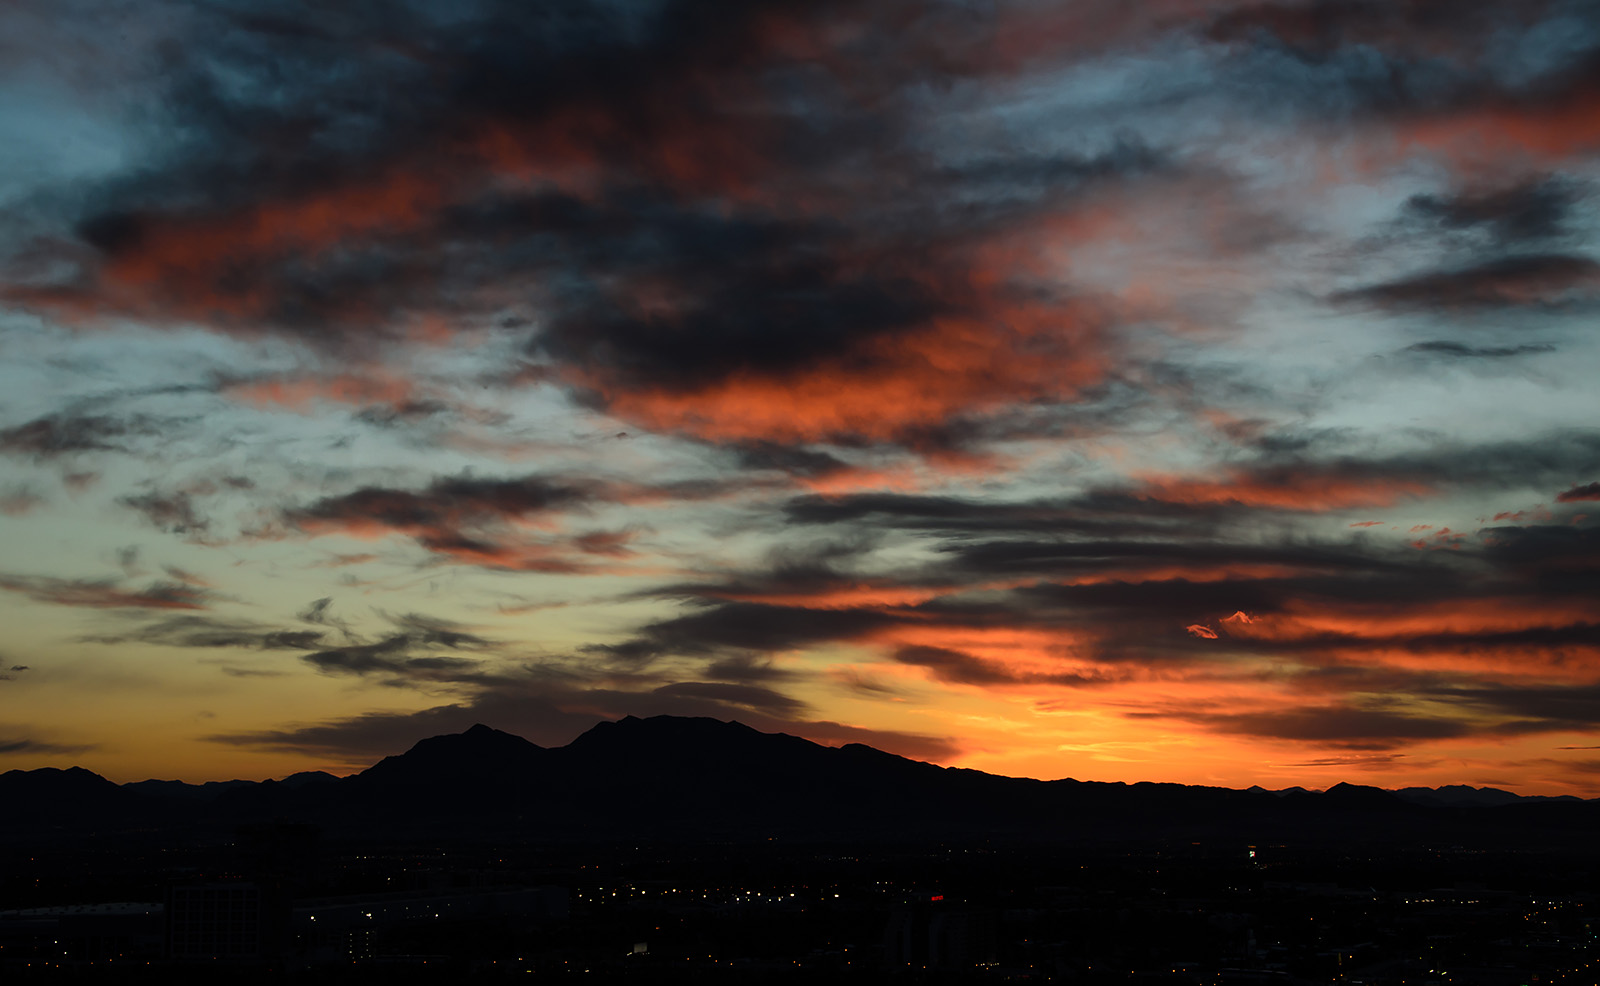 Learn how to capture colorful sunsets in the free Light and Night Workshop.